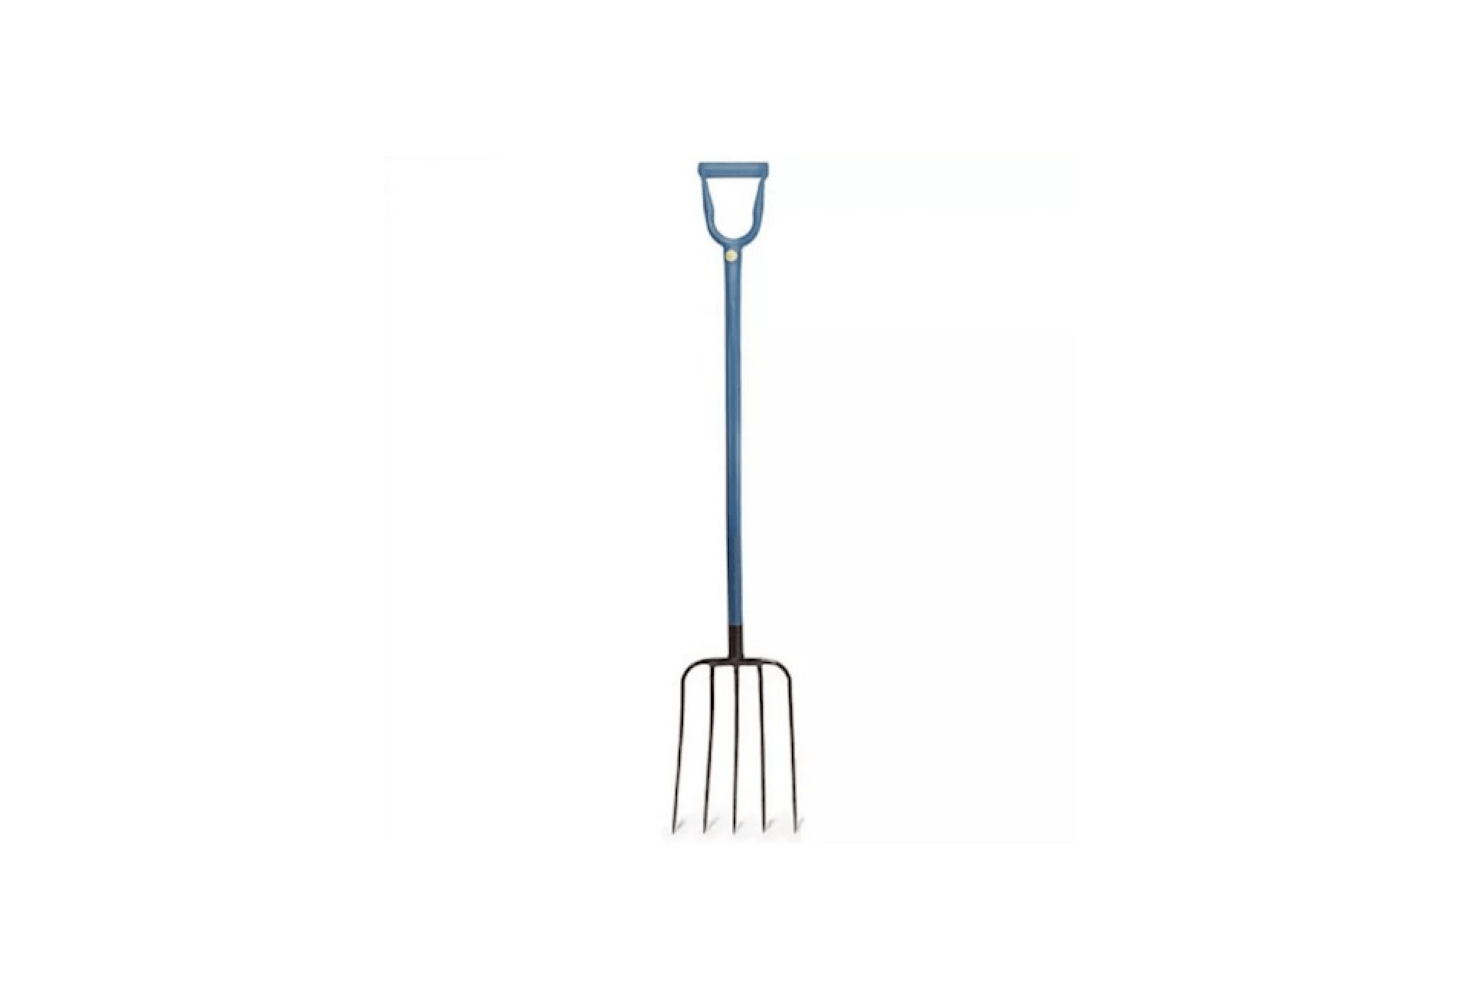 An all-steel Professional Mulching Fork with five tines is made in the US; $99.95 from Garrett Wade.